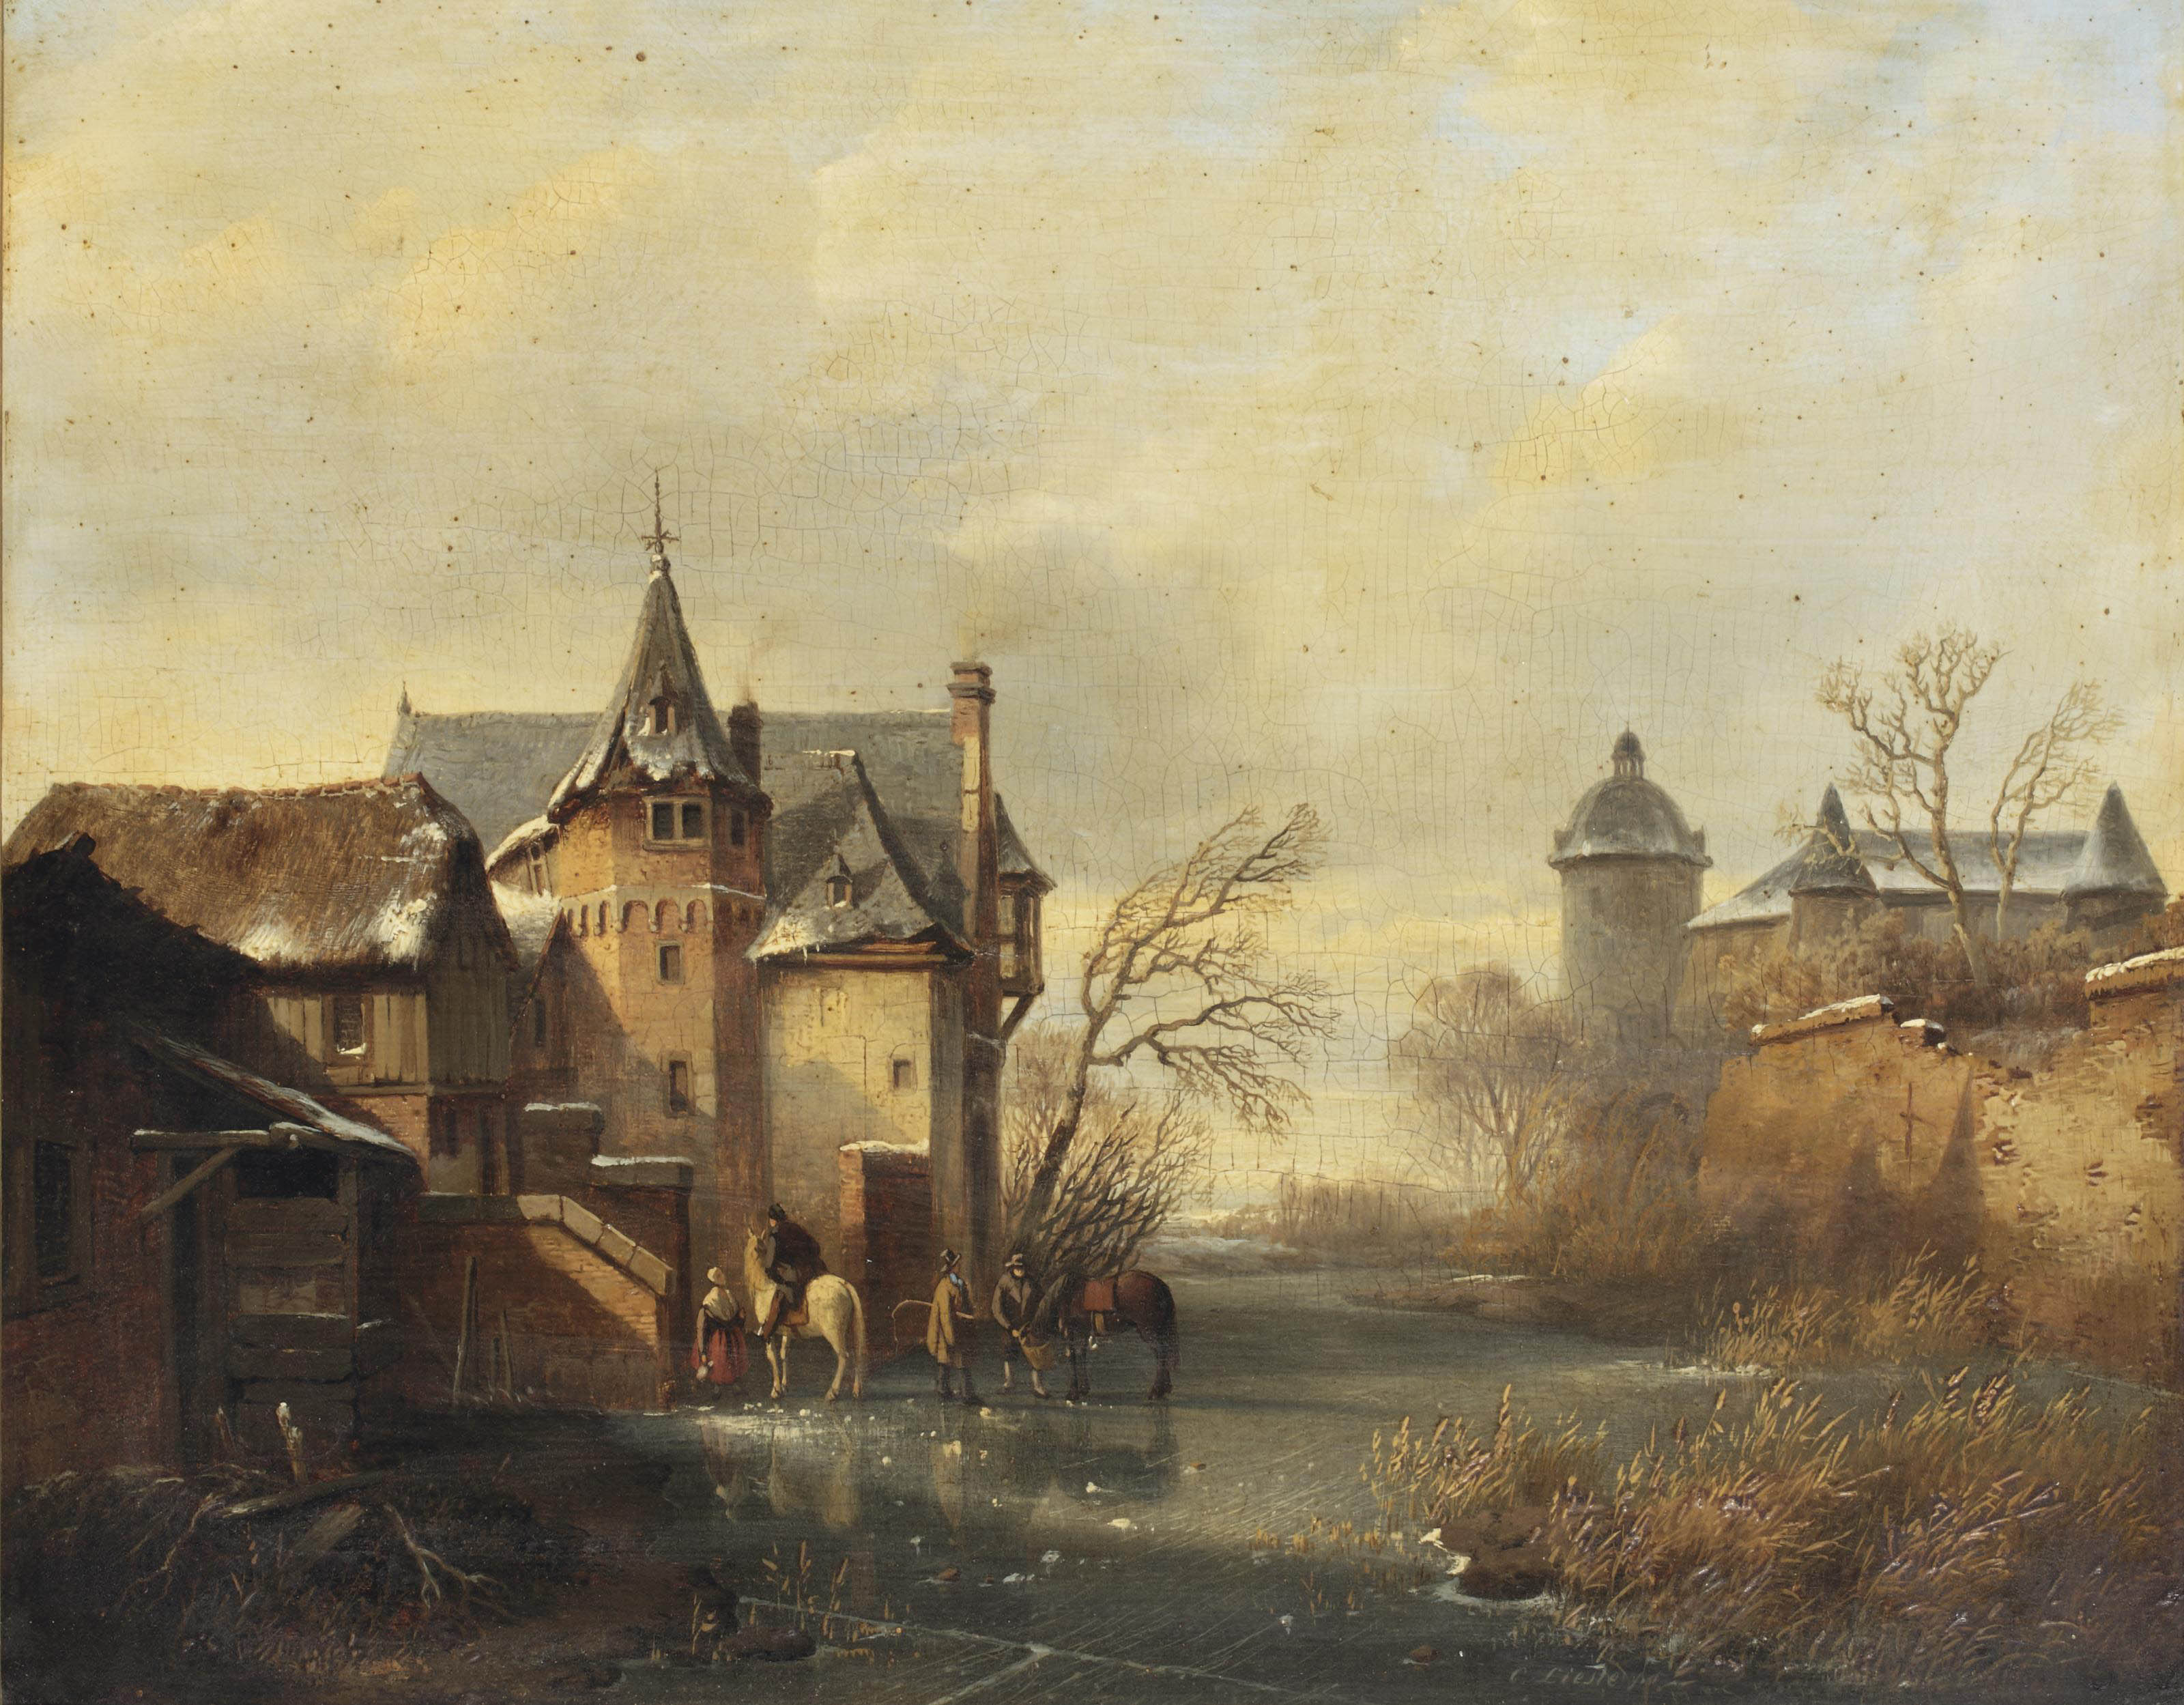 A winter landscape with horses and figures on the ice near a castle